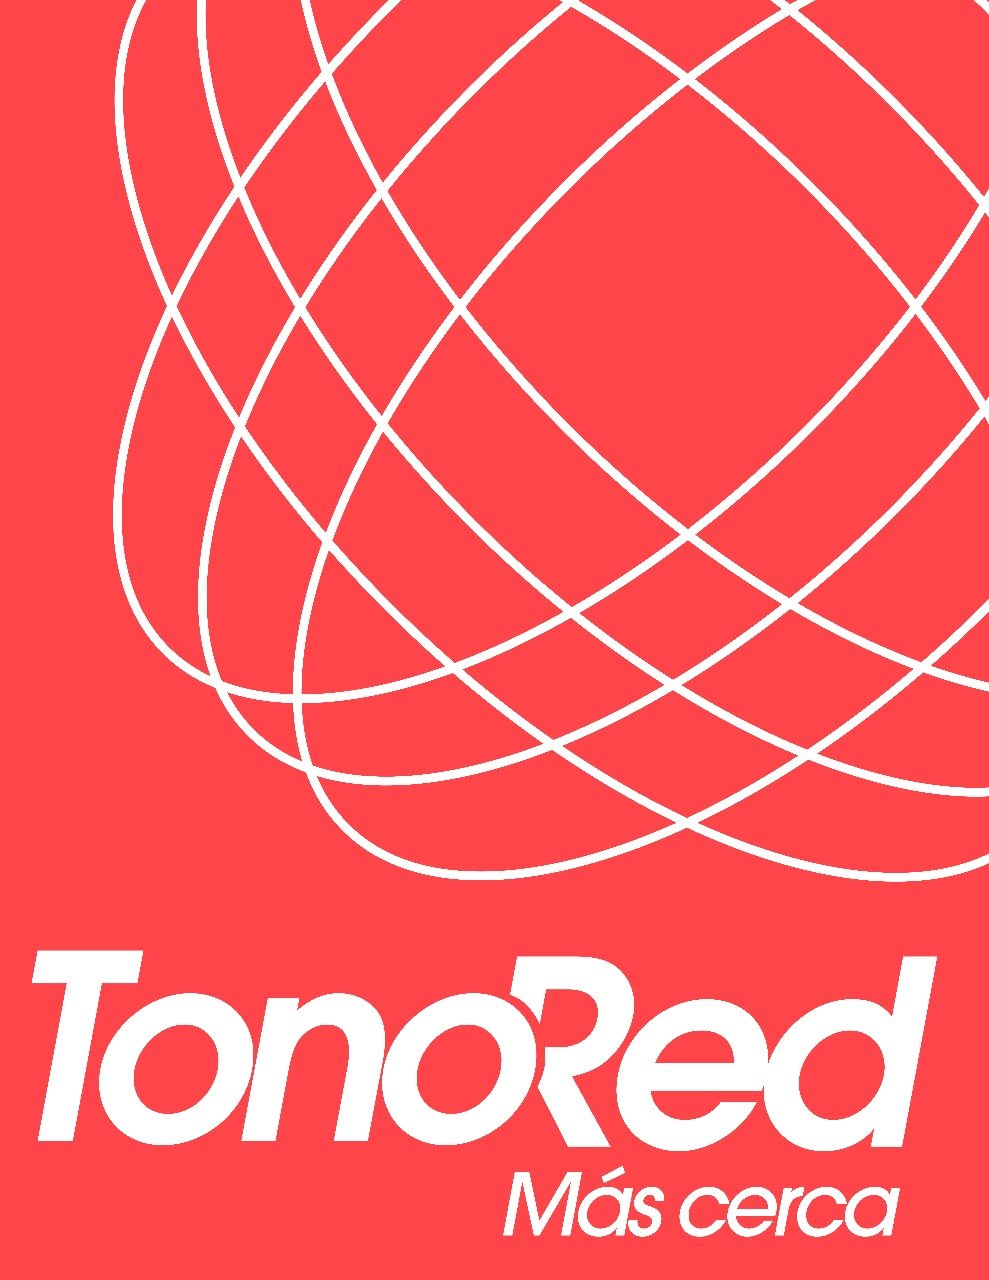 TONORED S.A.S.